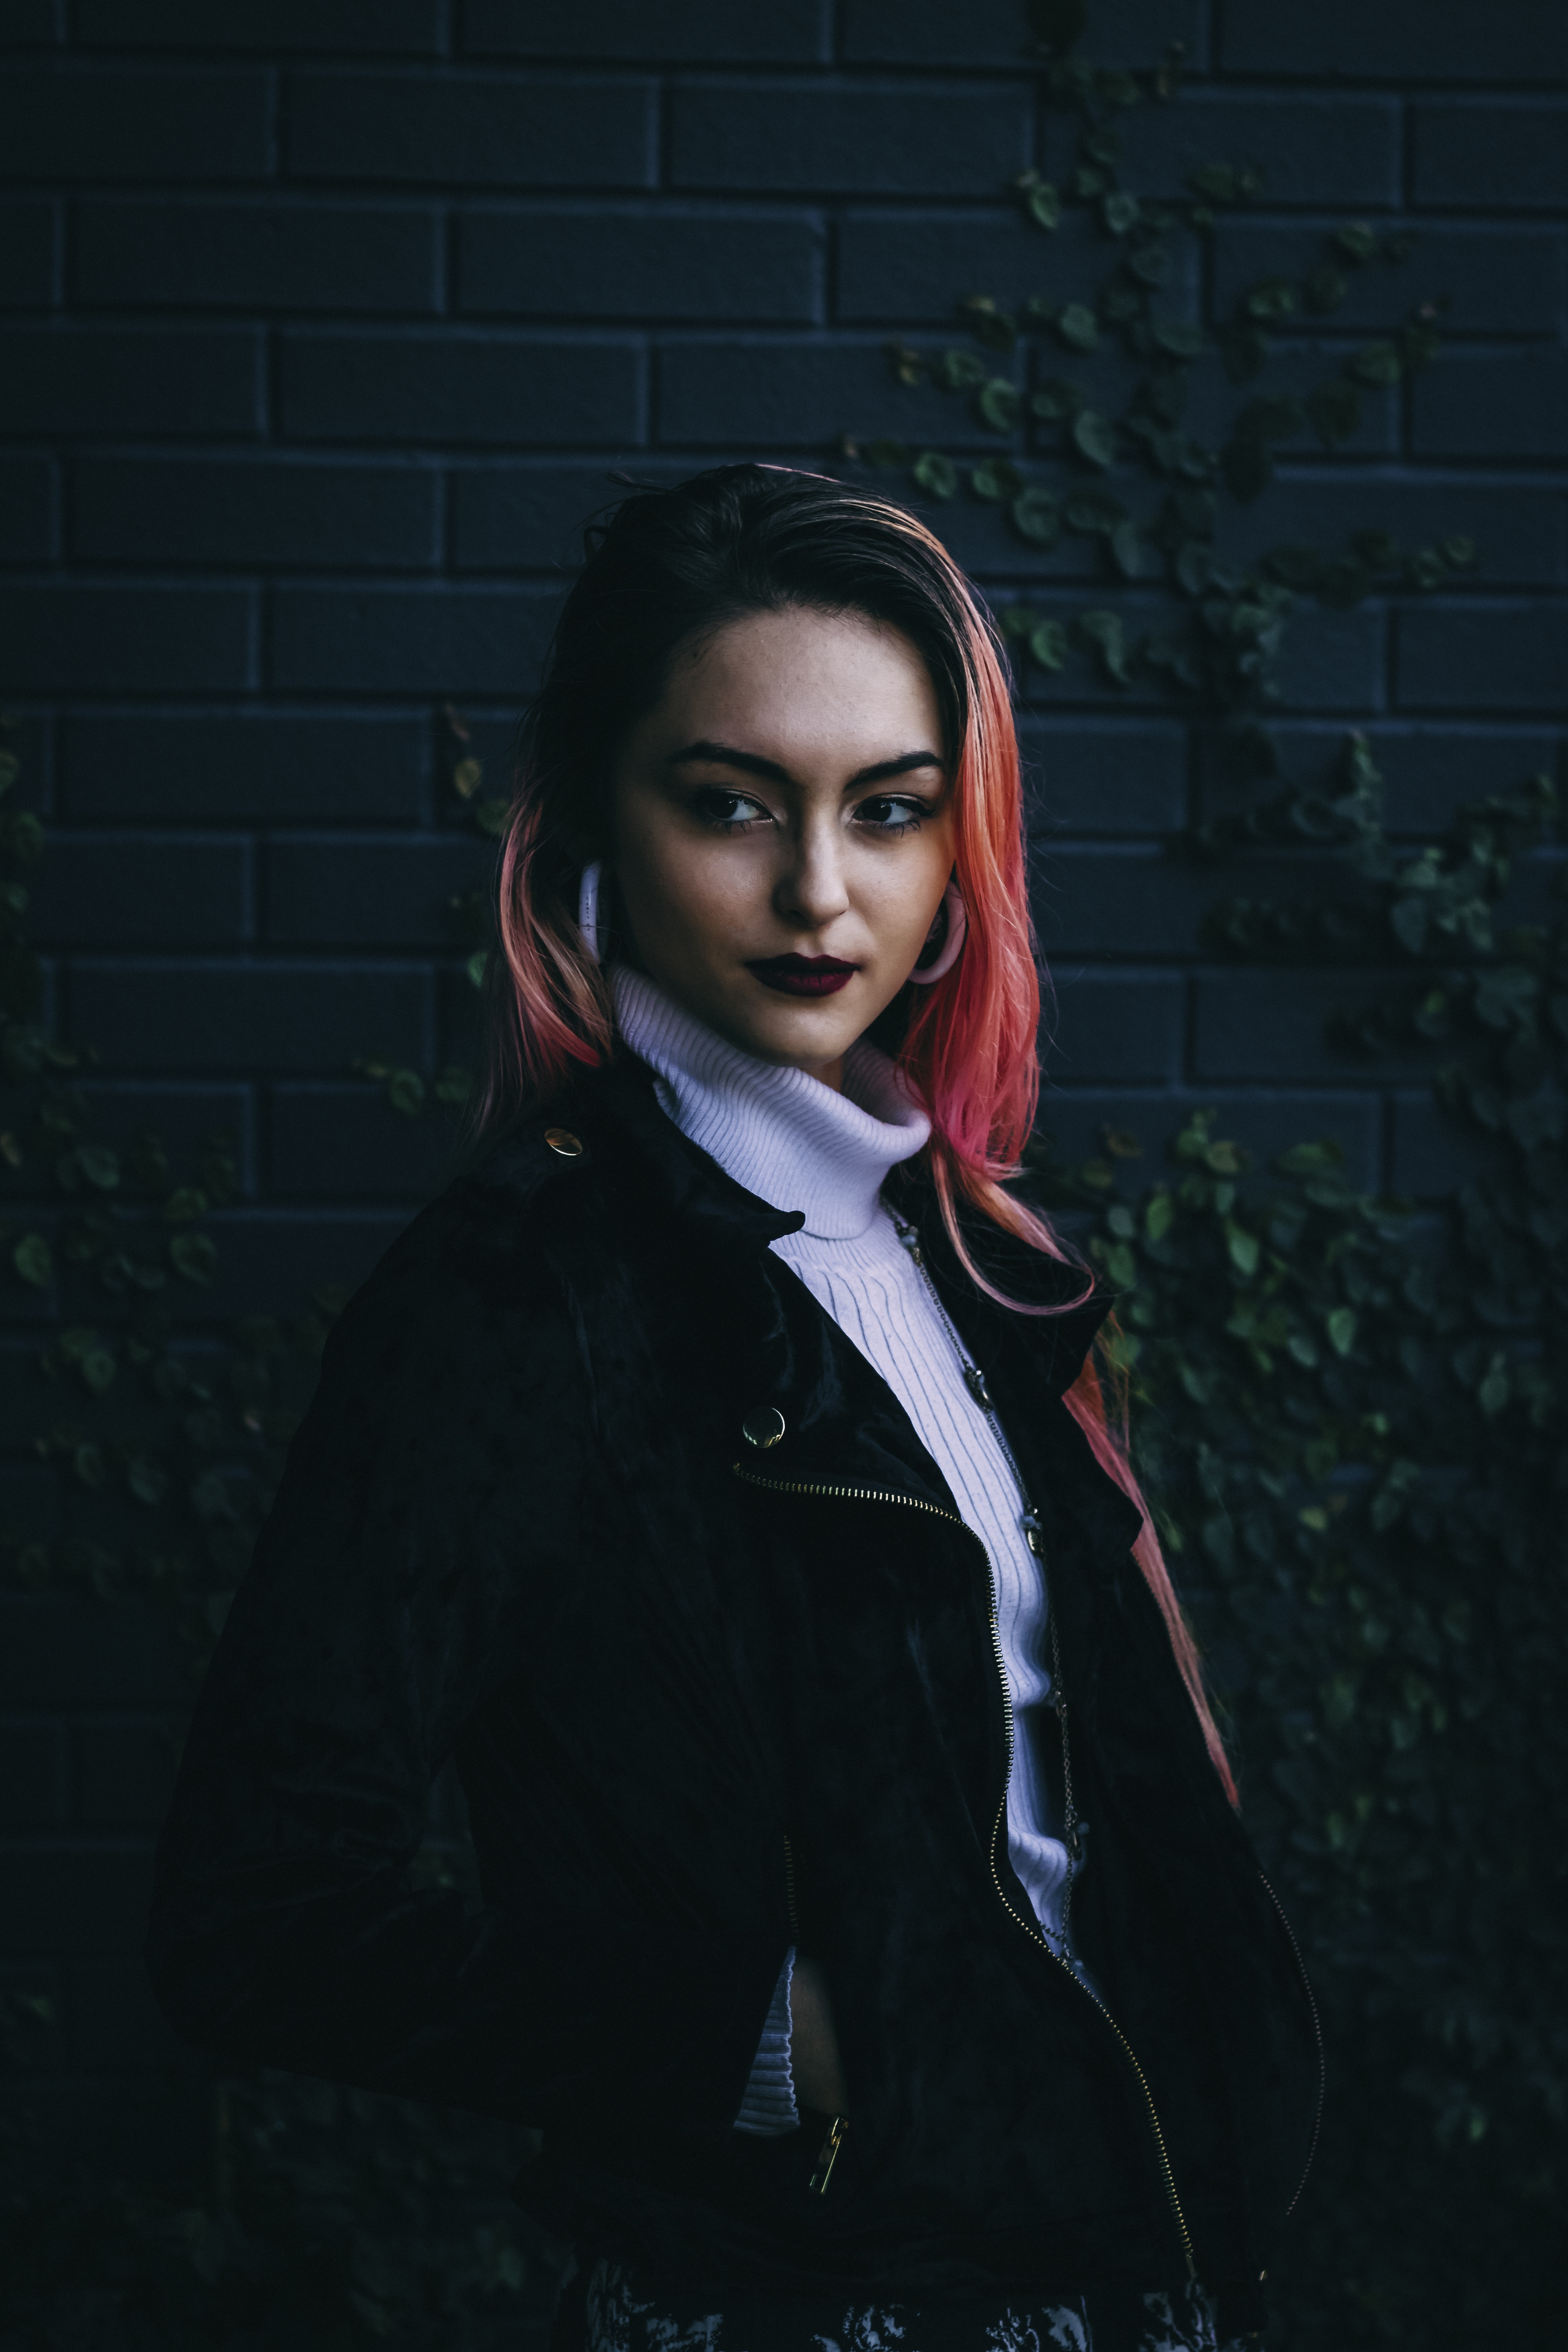 woman in black zip-up jacket with red hair